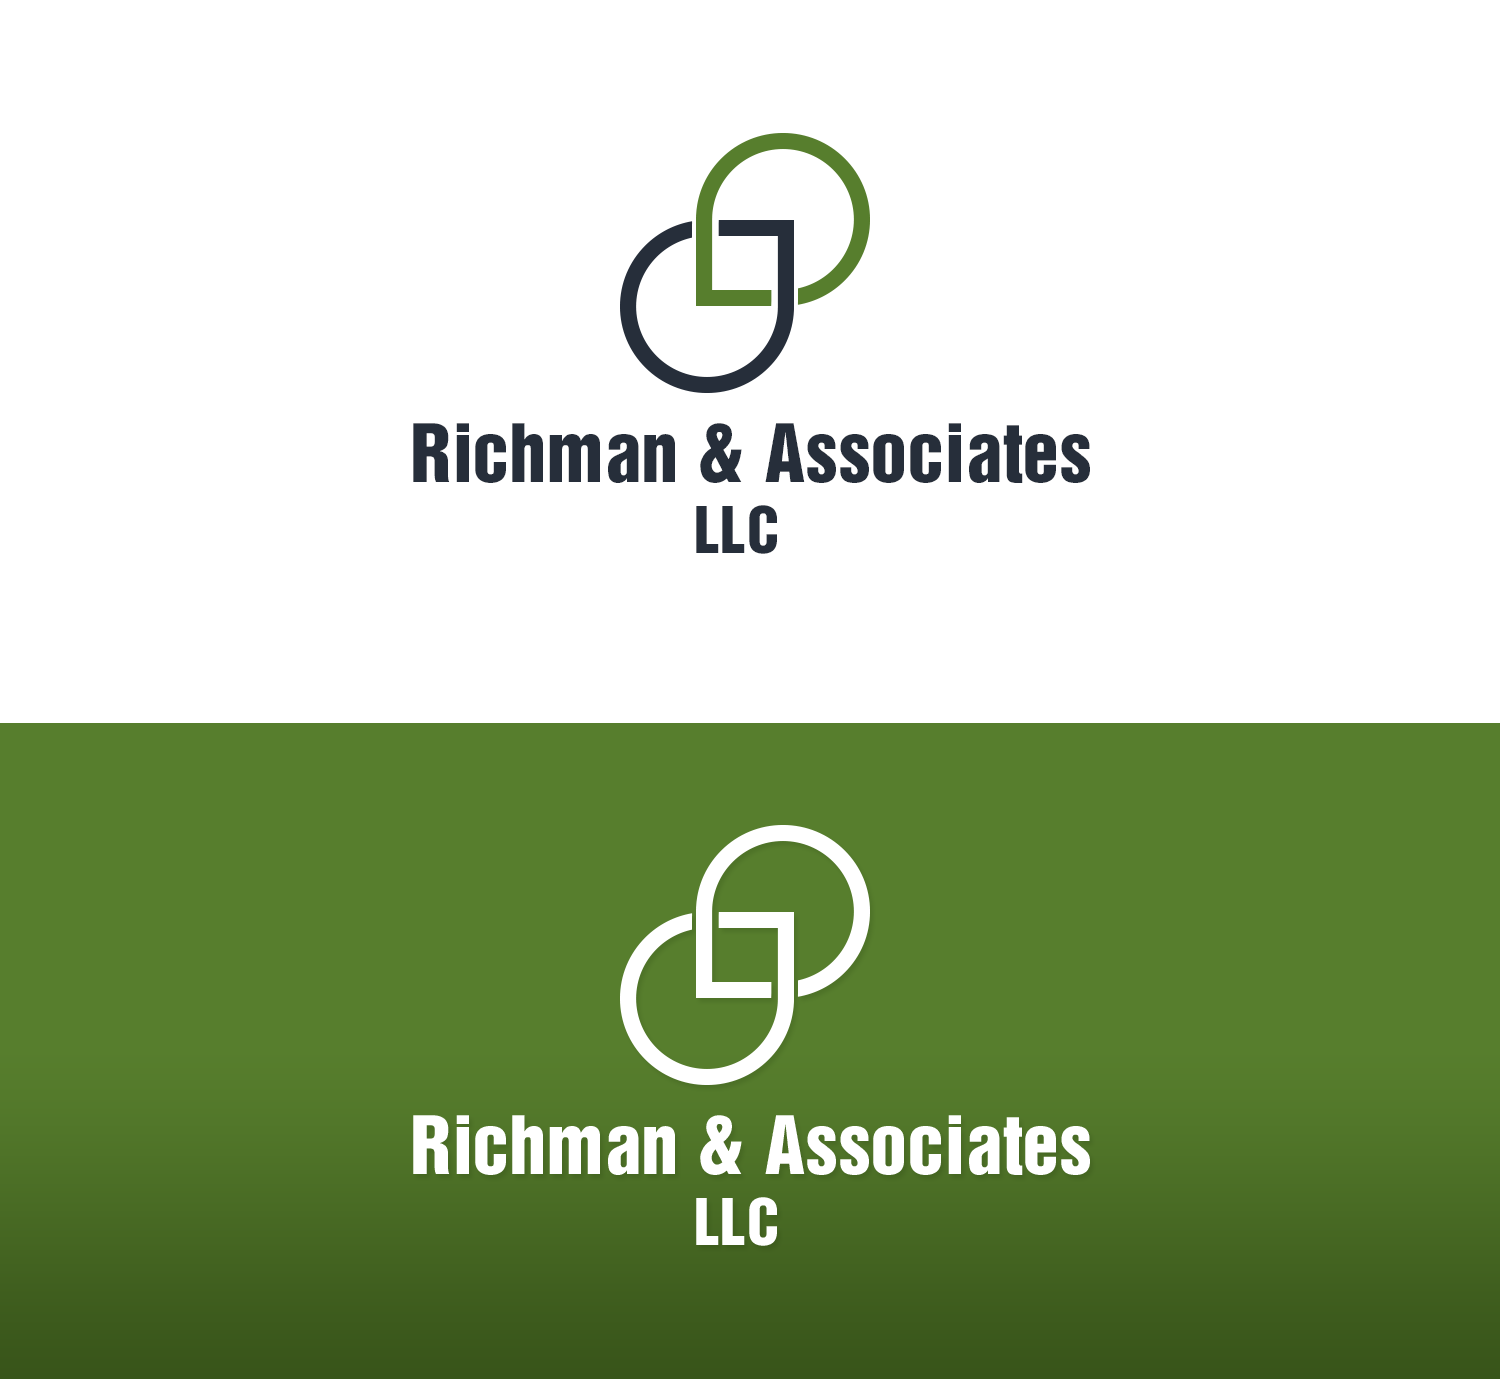 Logos for accountants